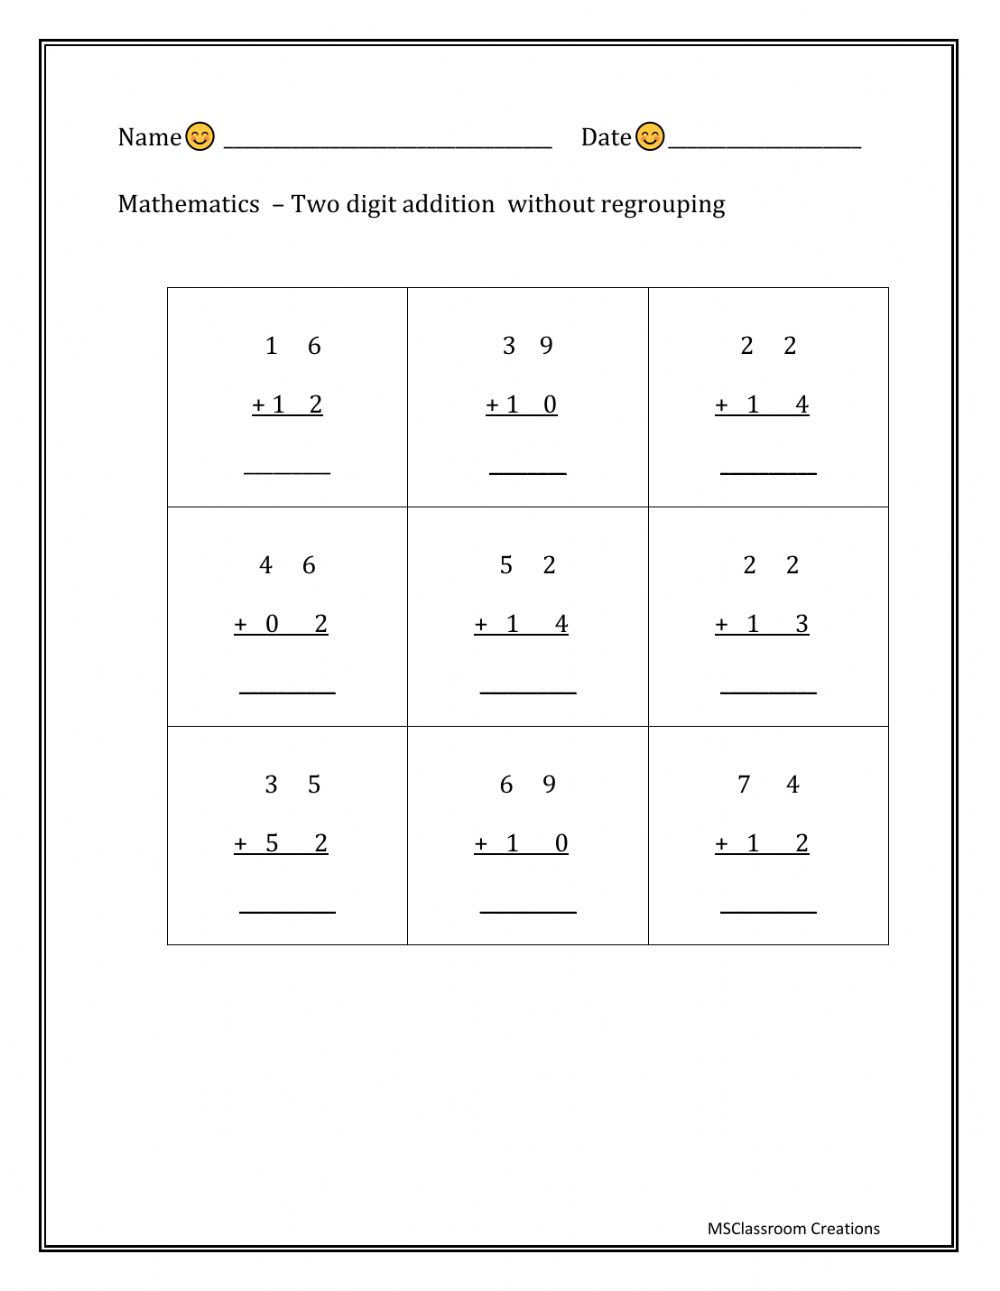 hight resolution of Two digit addition - without regrouping worksheet